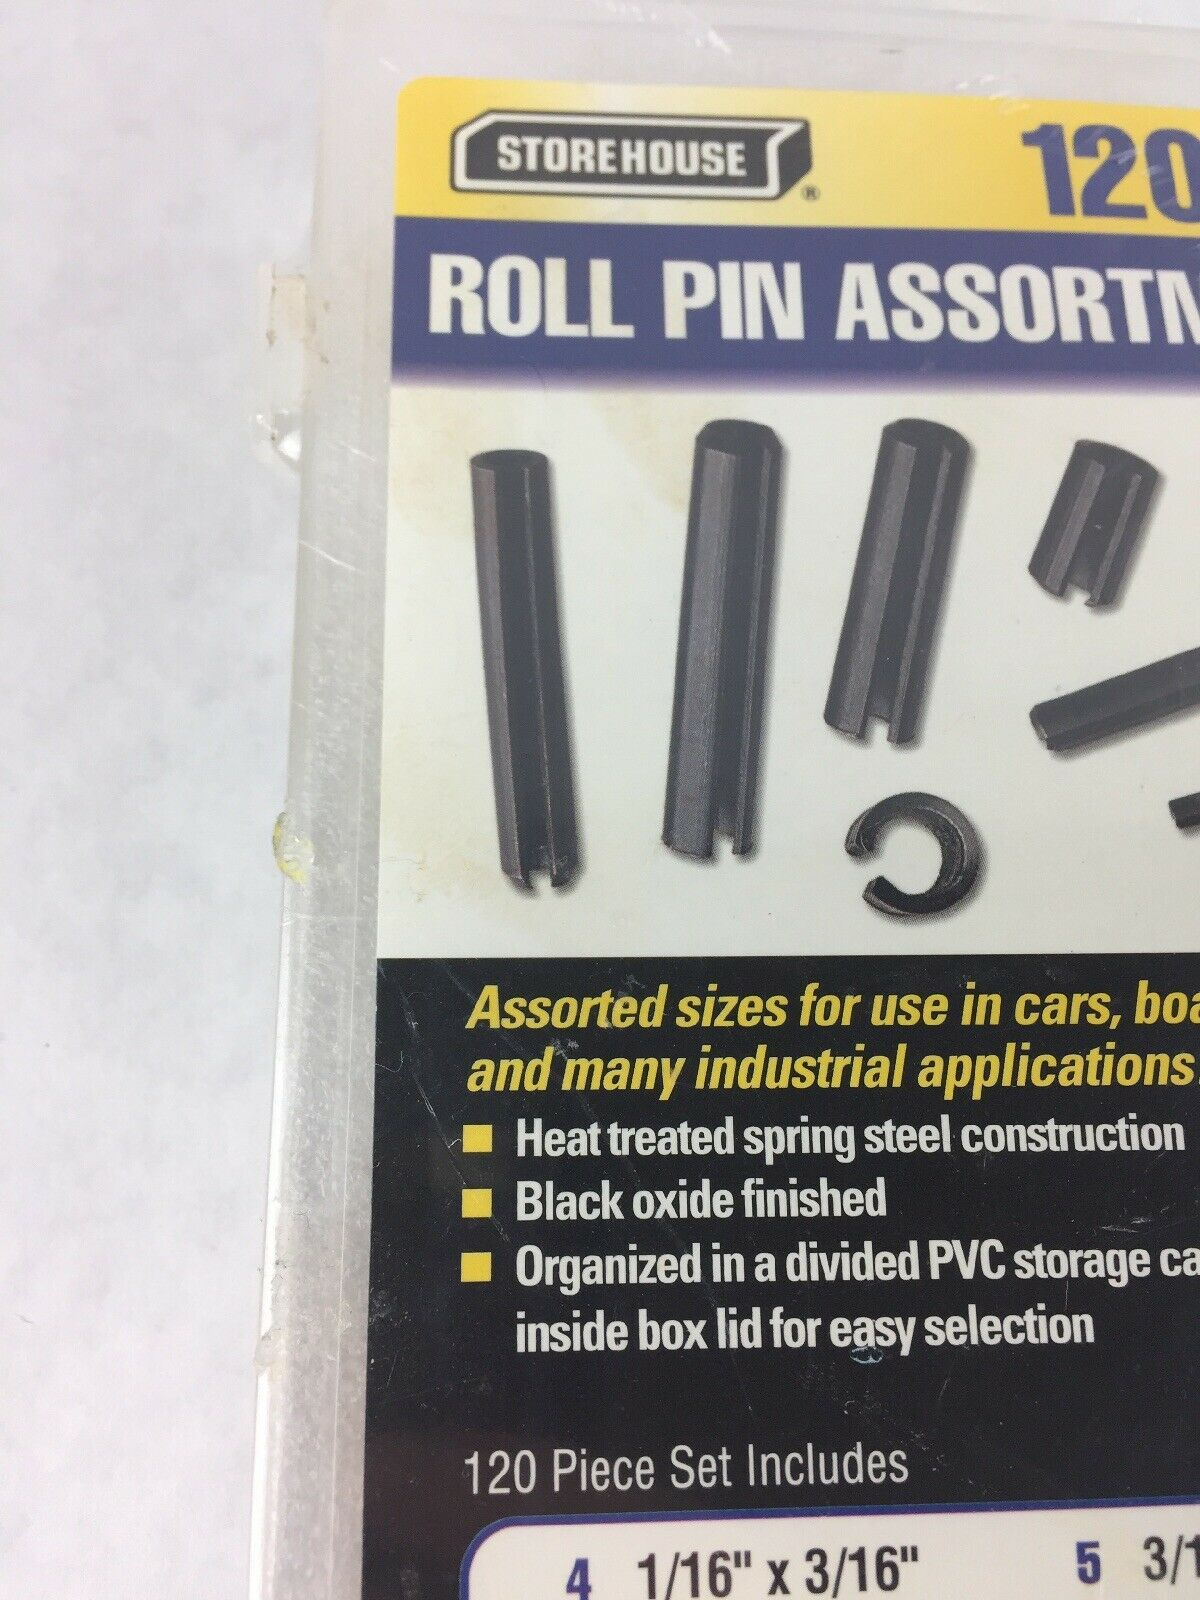 Storehouse 120 pc Roll Pin Assortment Item and 50 similar items